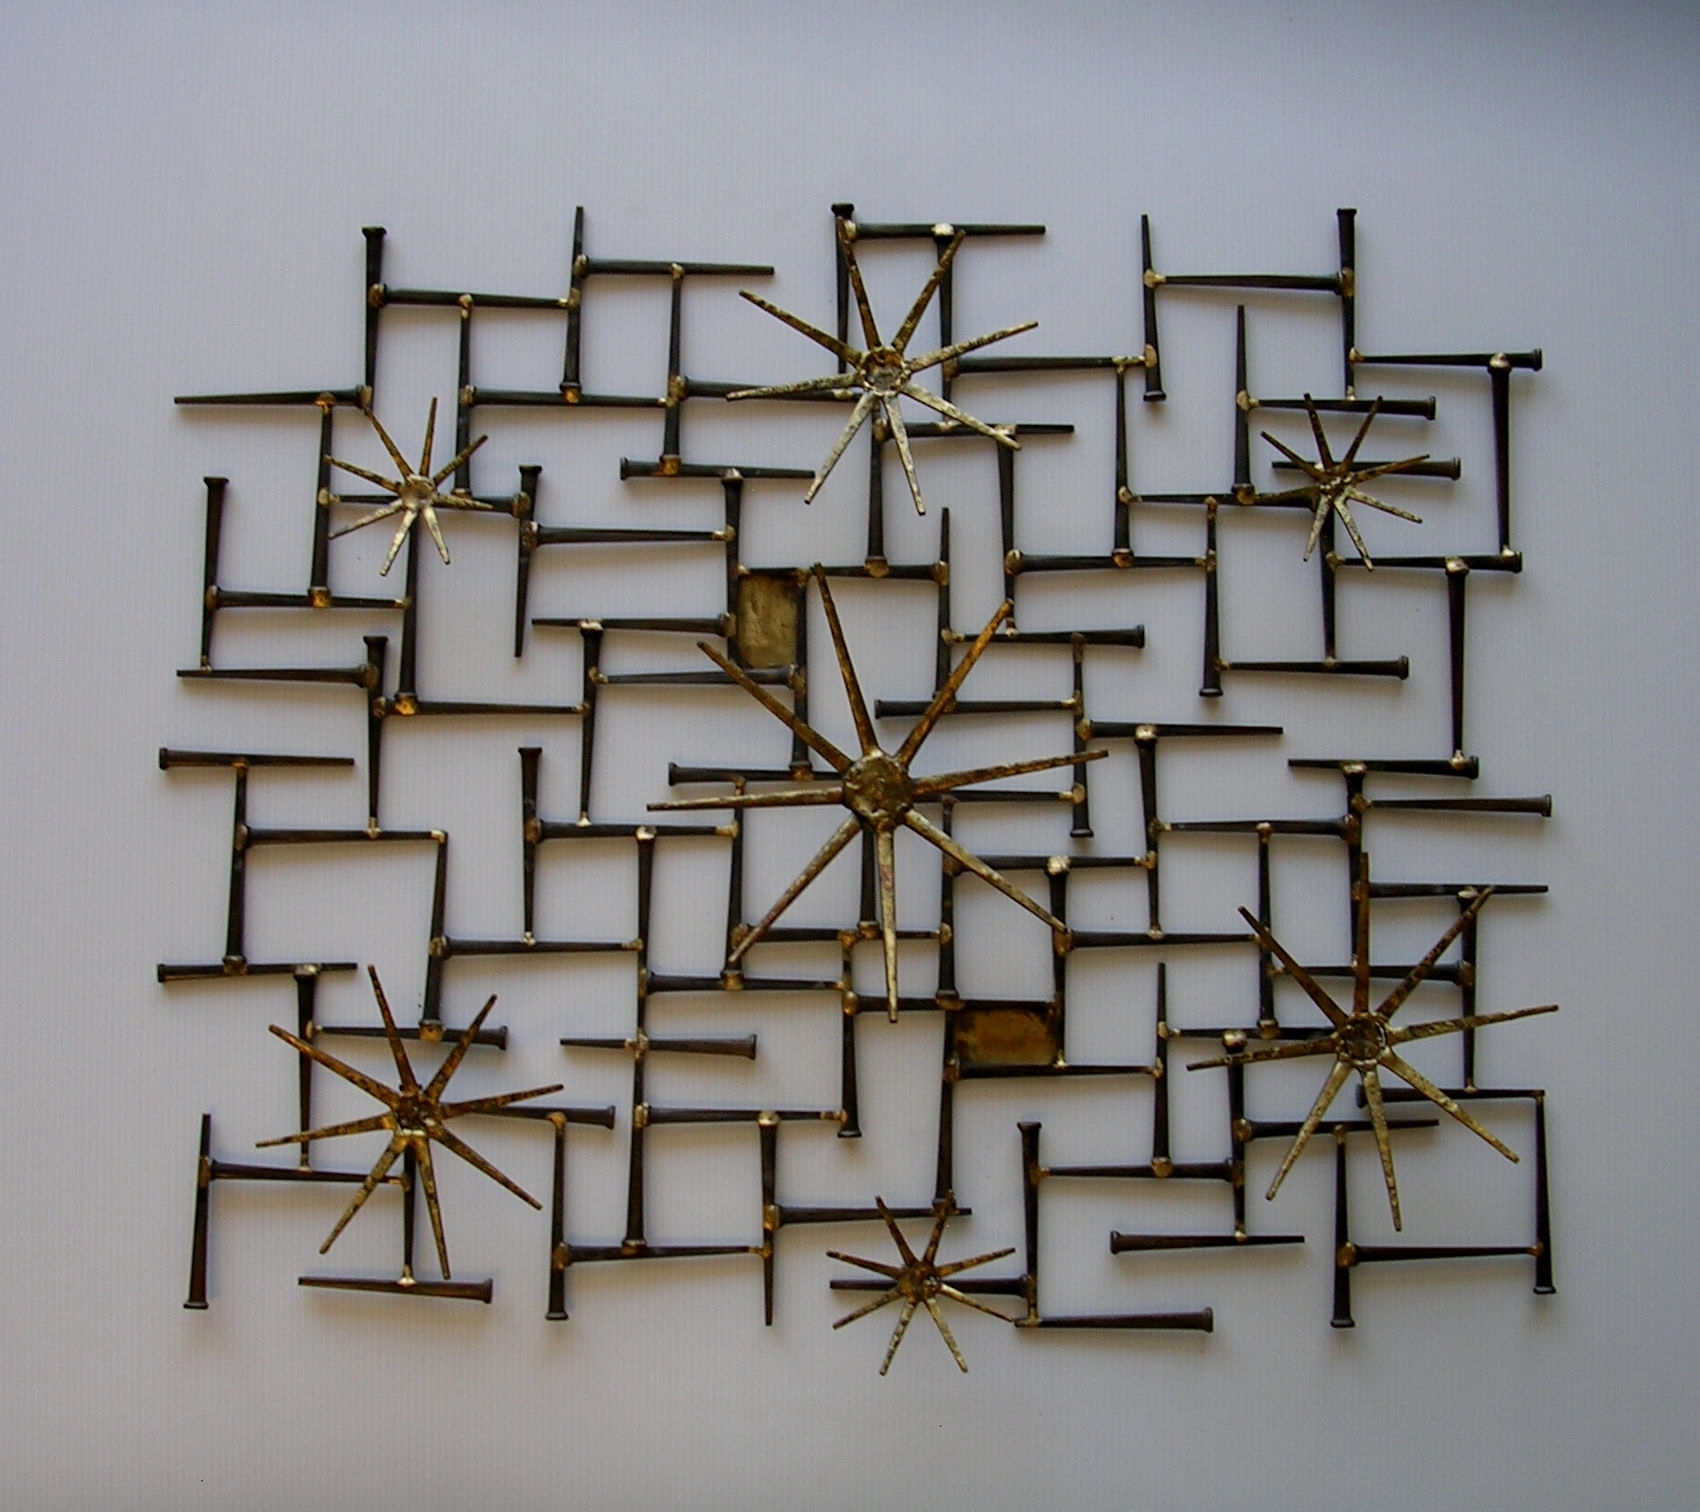 Marvelous Abstract Metal Wall Art | Olpctalks In Most Up To Date Abstract Iron Wall Art (View 12 of 20)